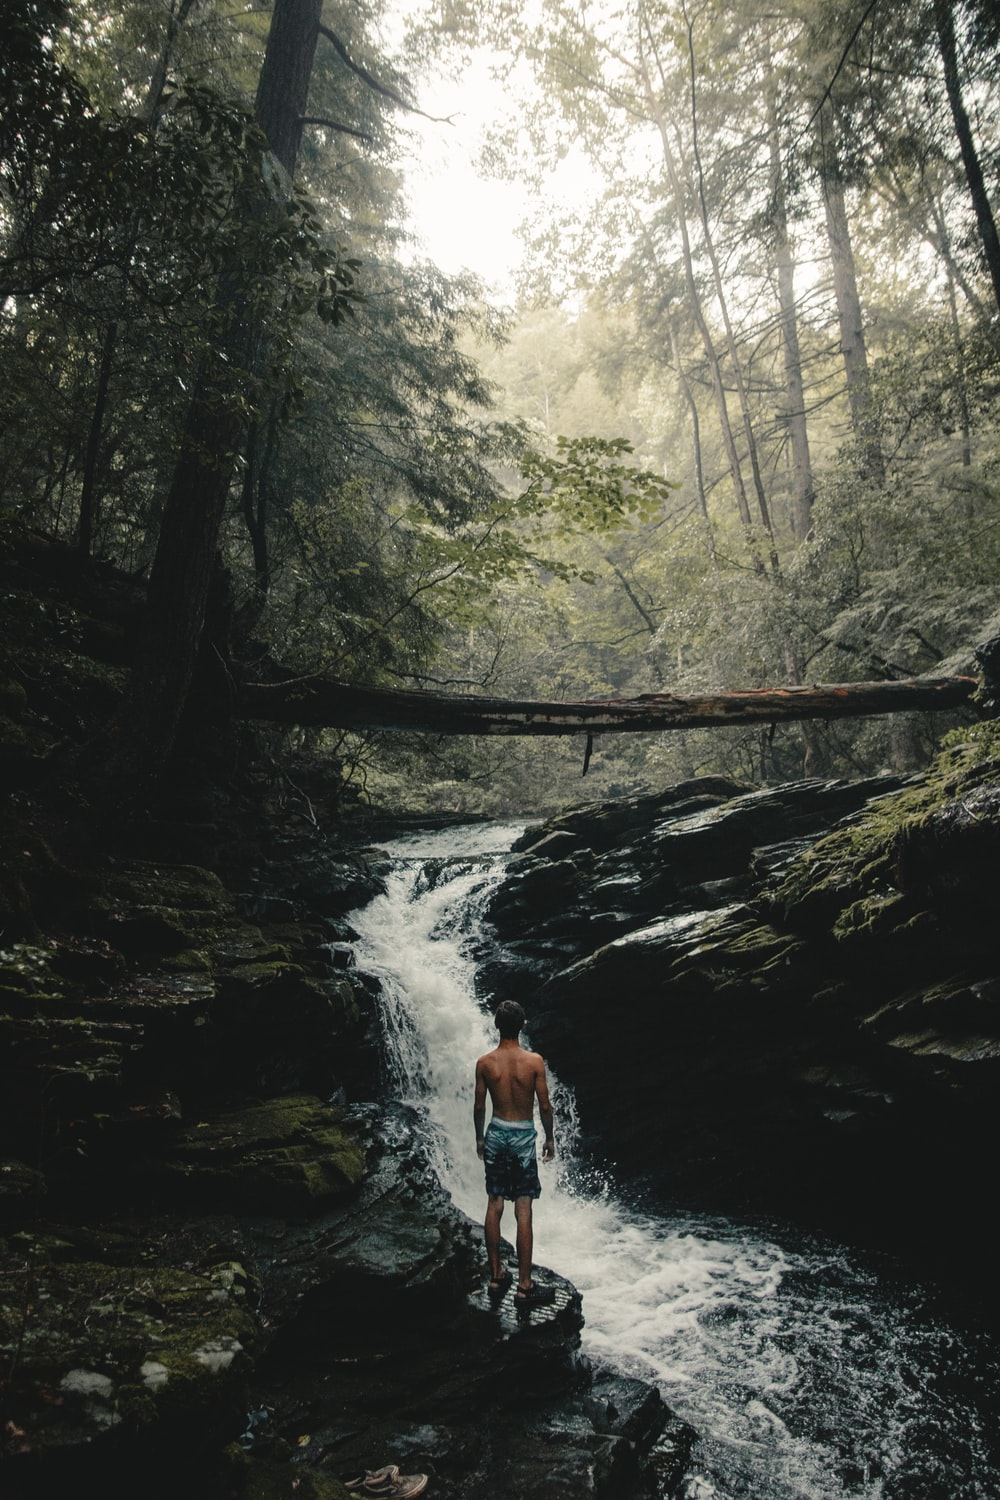 man wearing teal and black shorts standing beside waterfalls